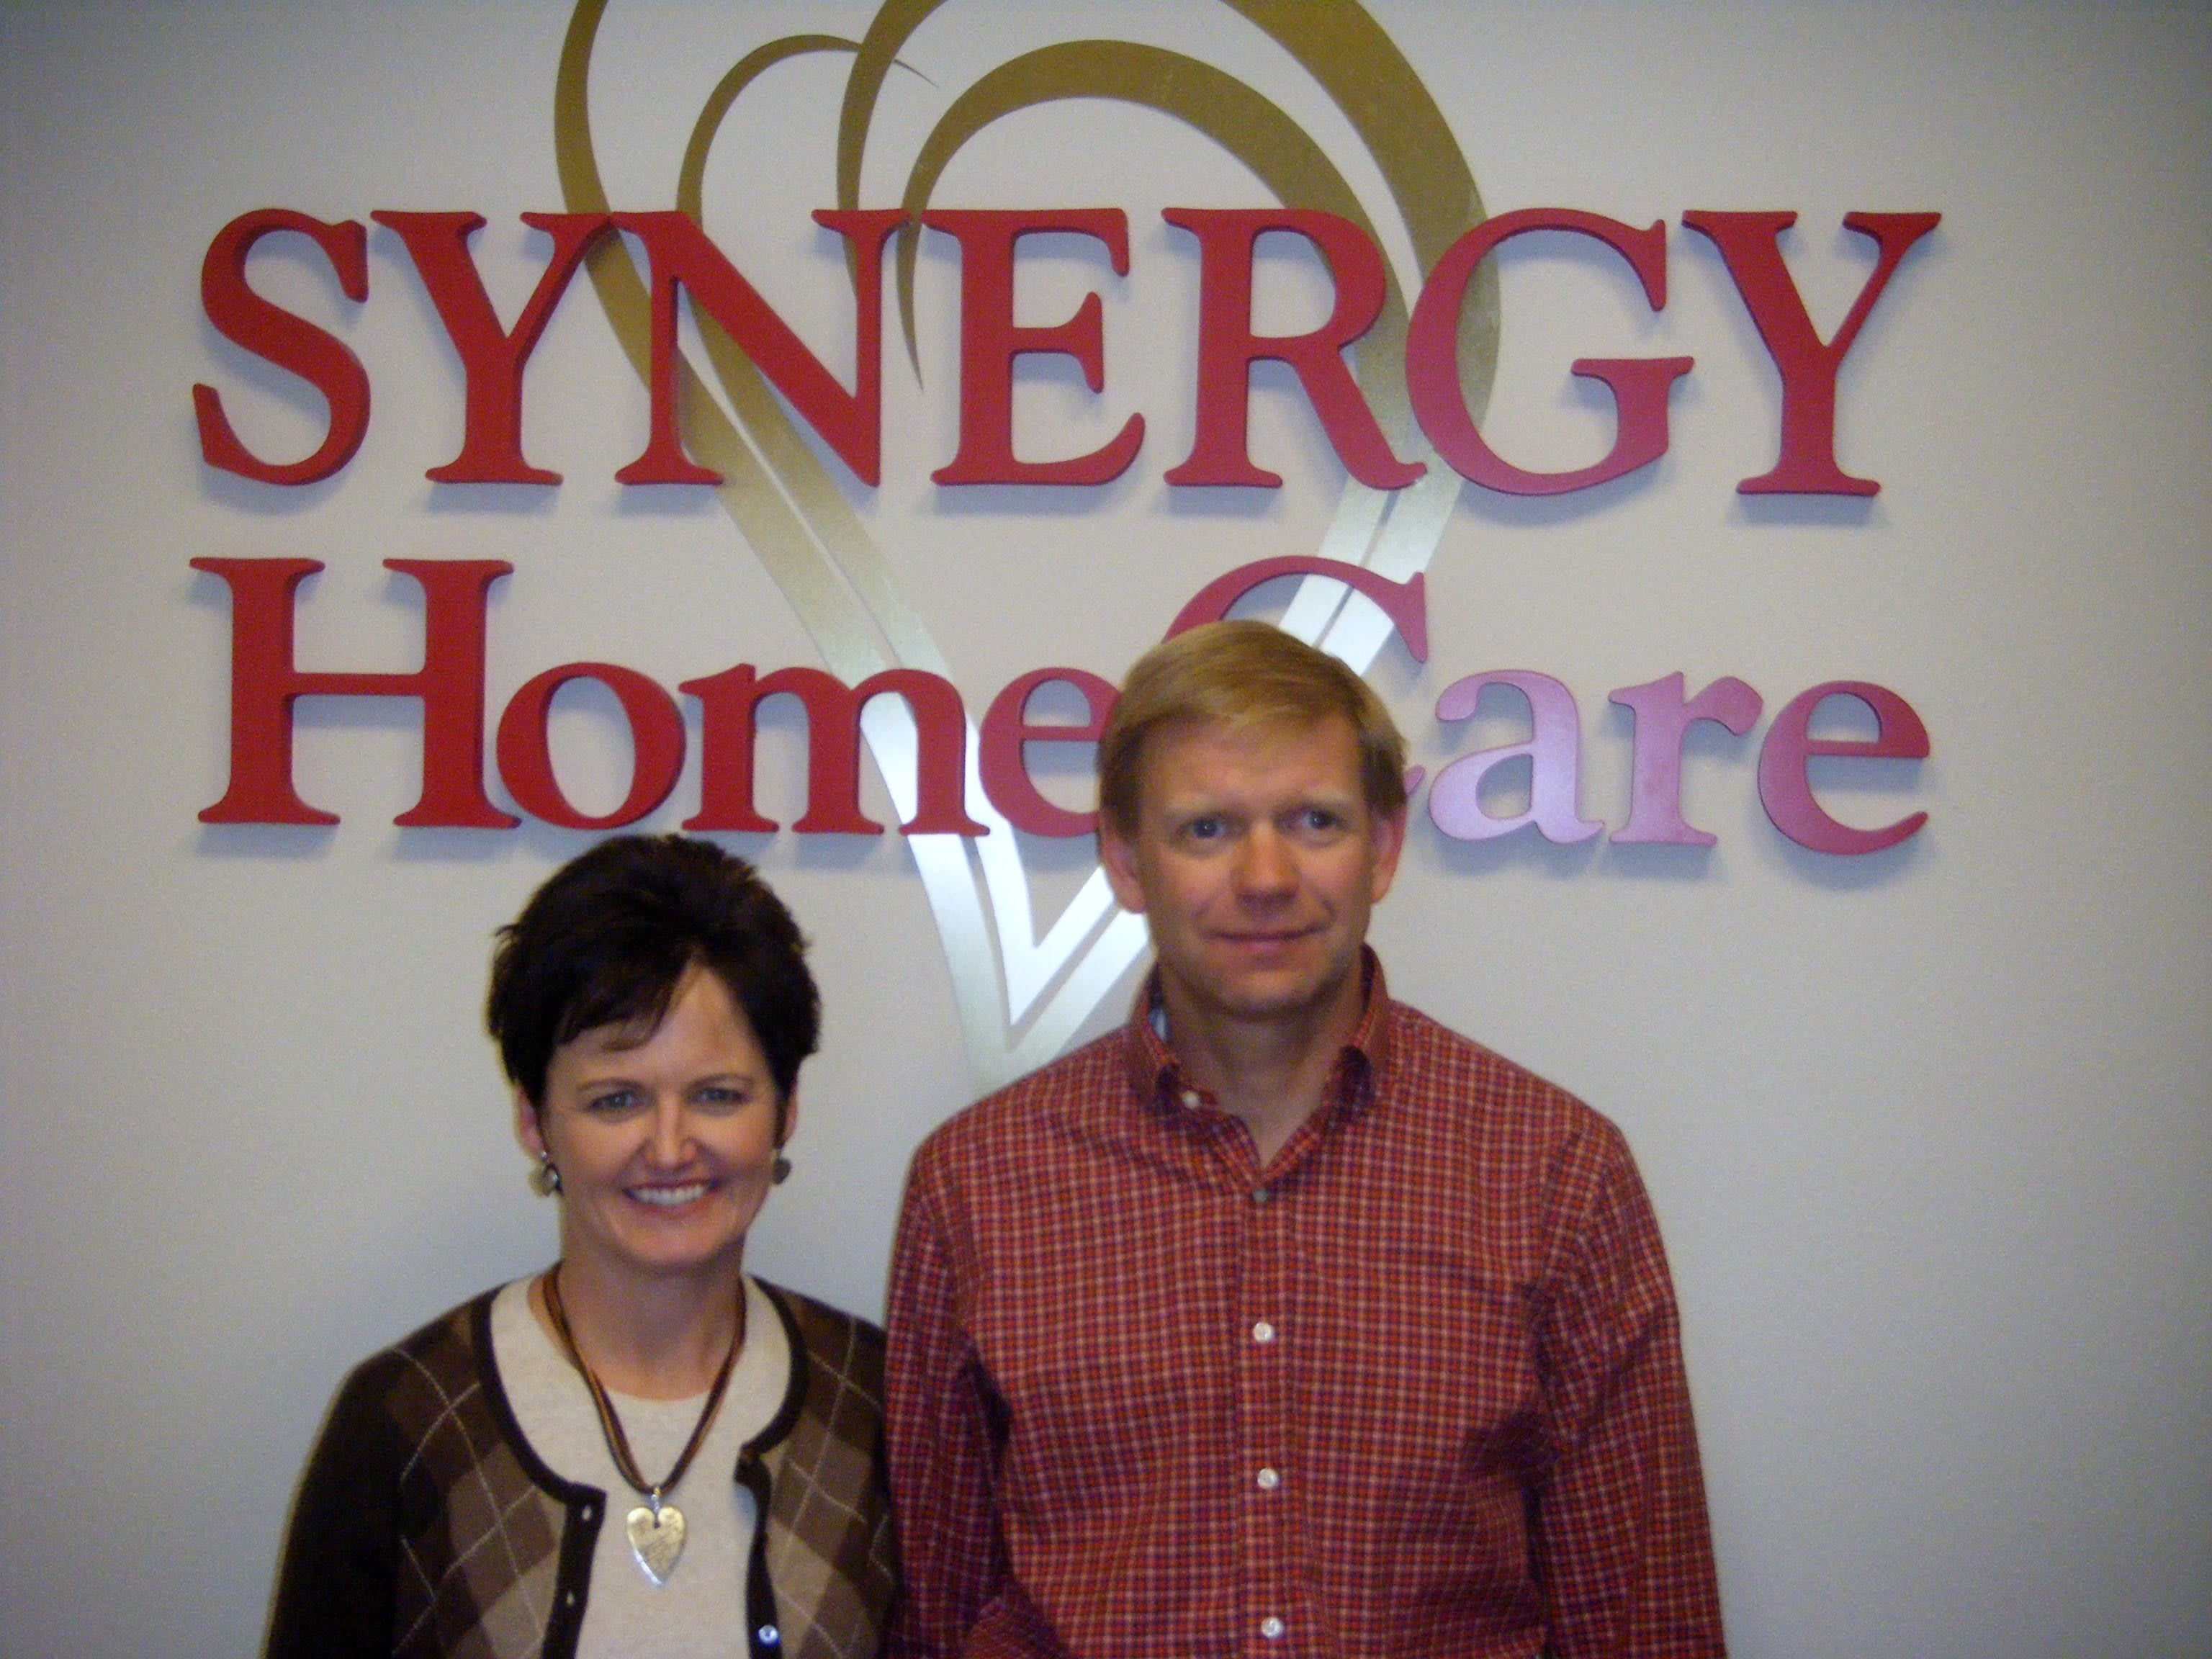 Photo 1 of SYNERGY Home Care - Cheyenne, WY